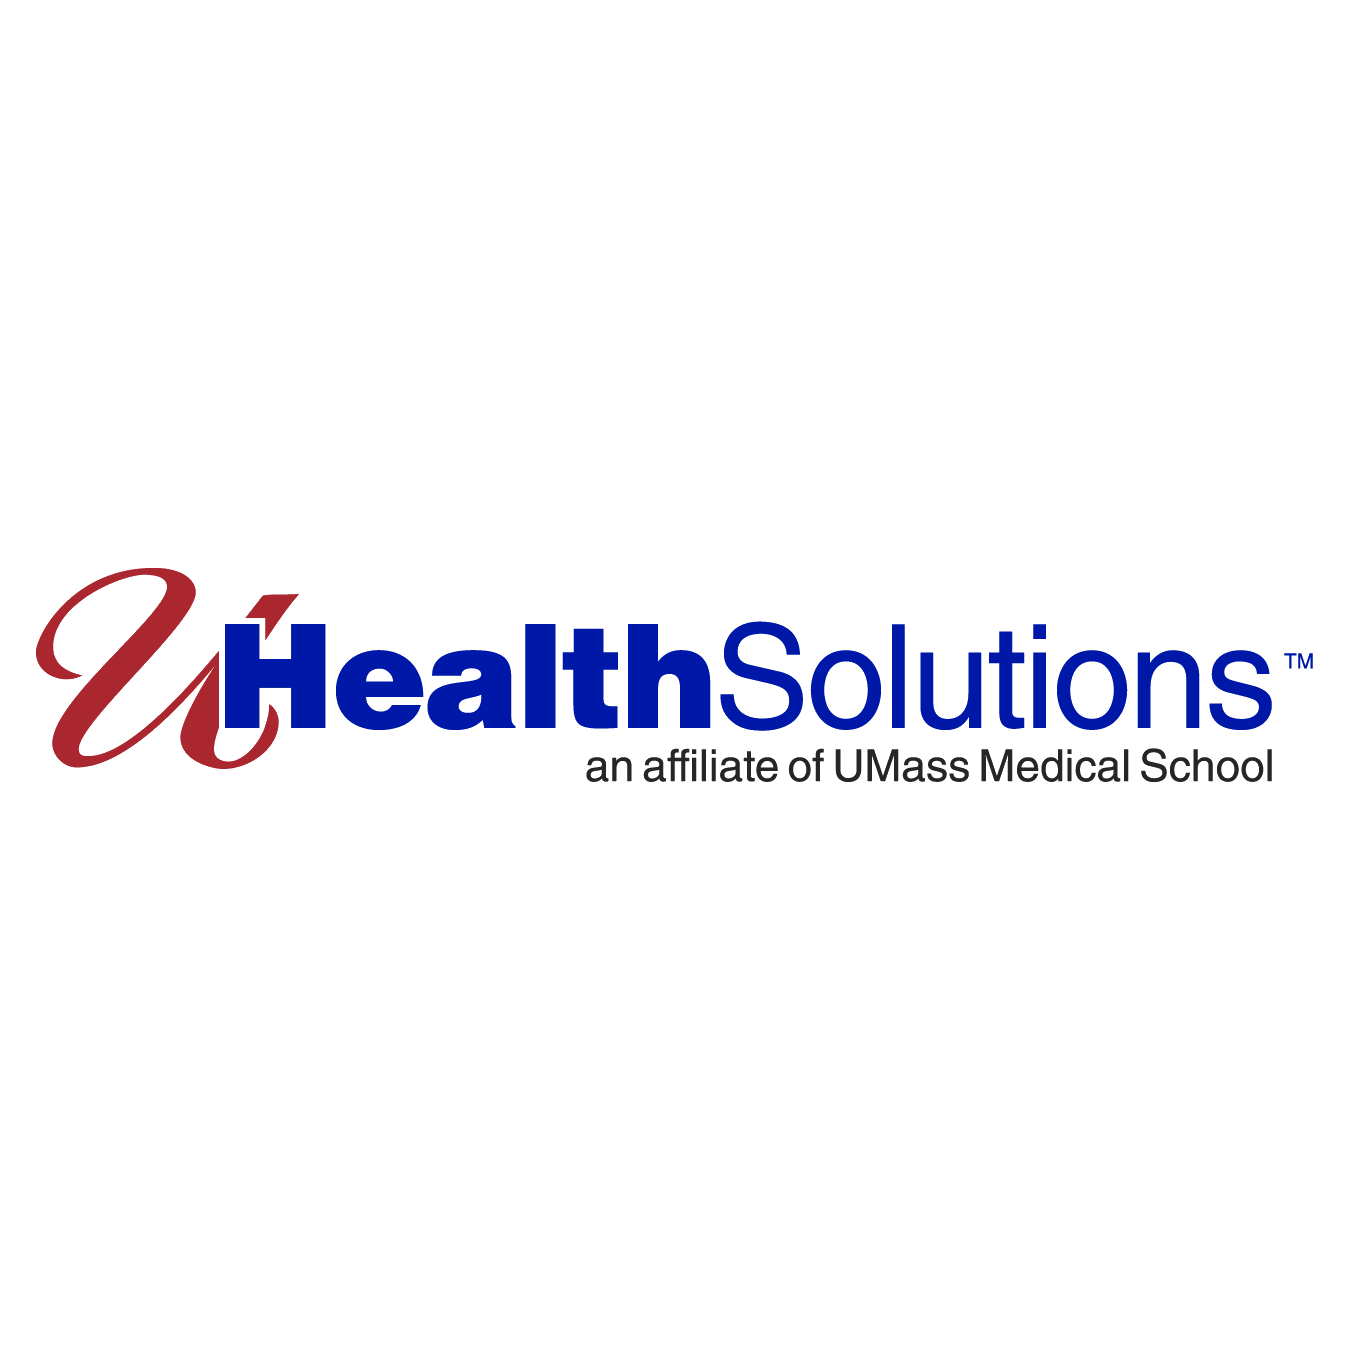 UHealth Solutions